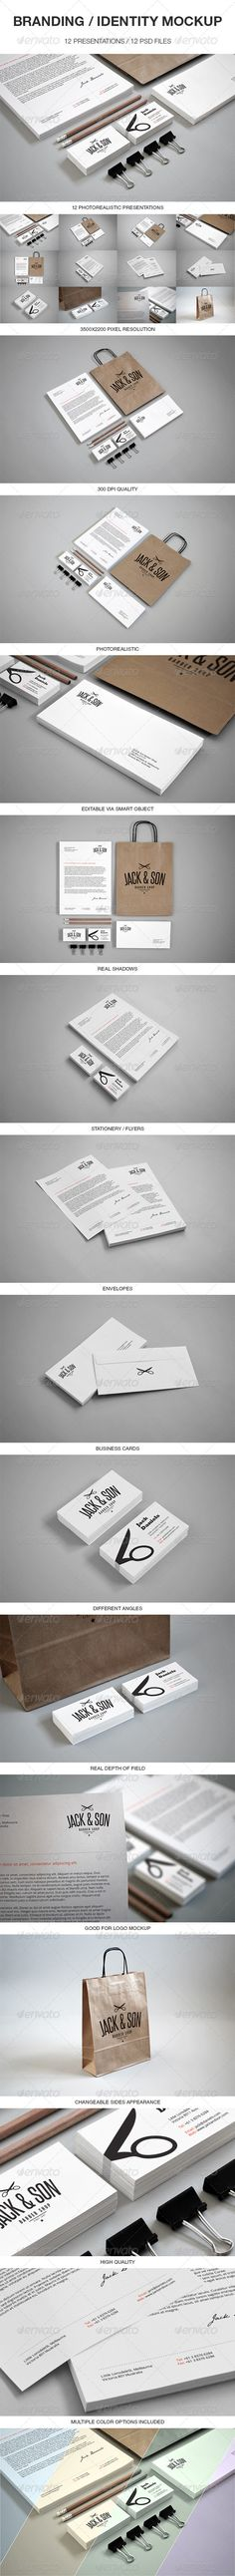 "Photorealistic, Clean and easy to use Branding / Identity Mockup. Present Your Work in a very elegant way. All you have to do is to ""Edit content"" and paste your design in smart objects."